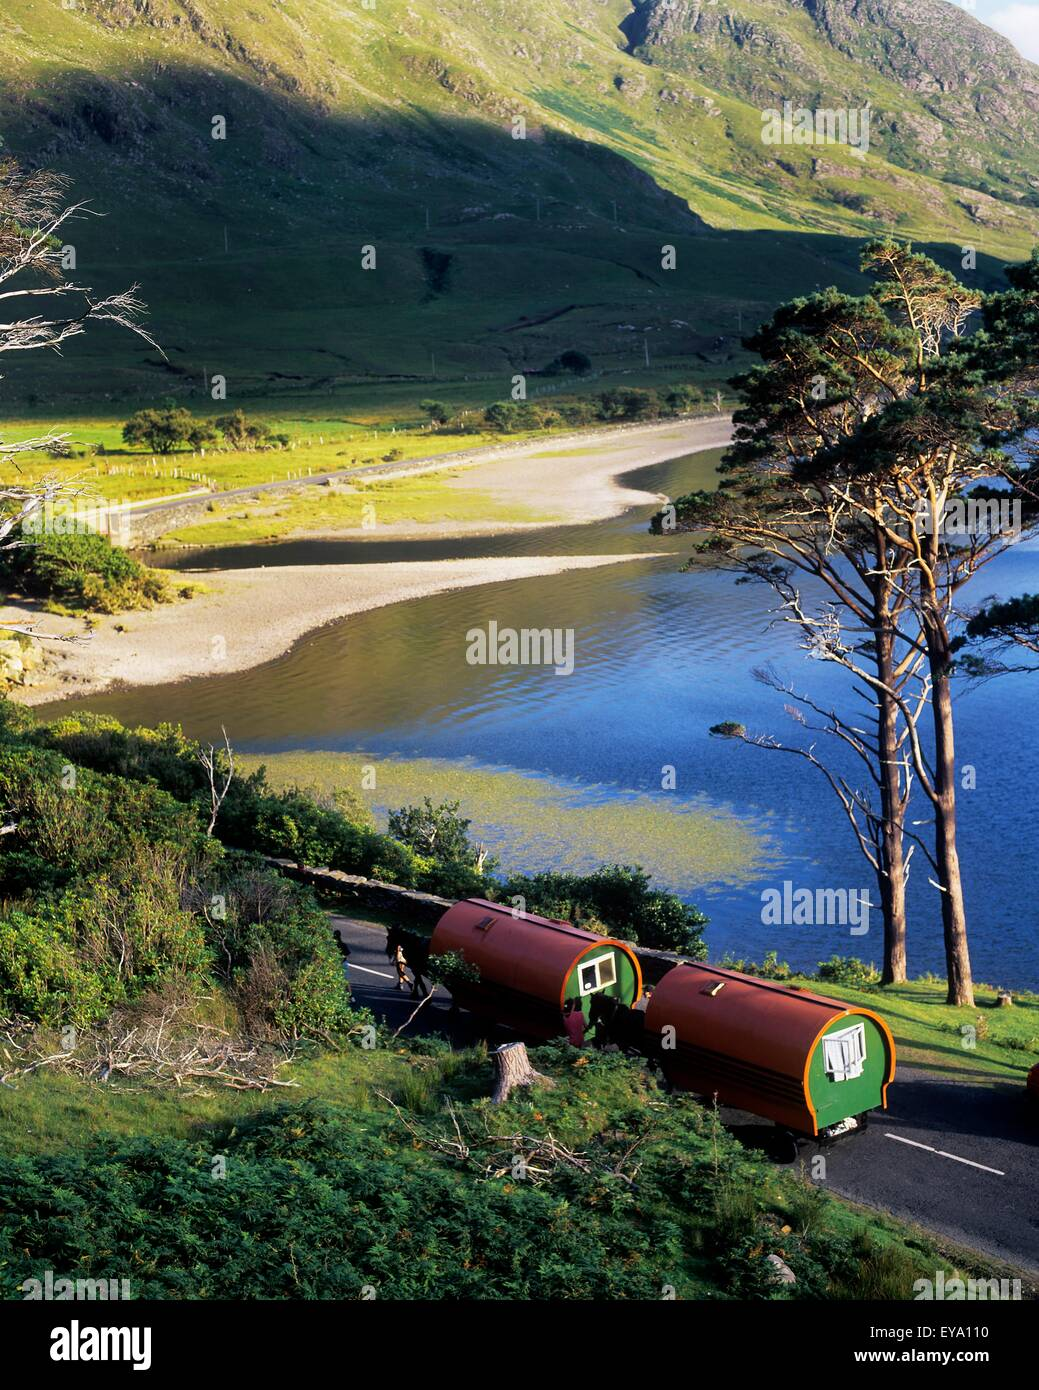 High Angle View Of Two Mobile Homes On The Road, Doo Lough Pass, County Mayo, Republic Of Ireland - Stock Image